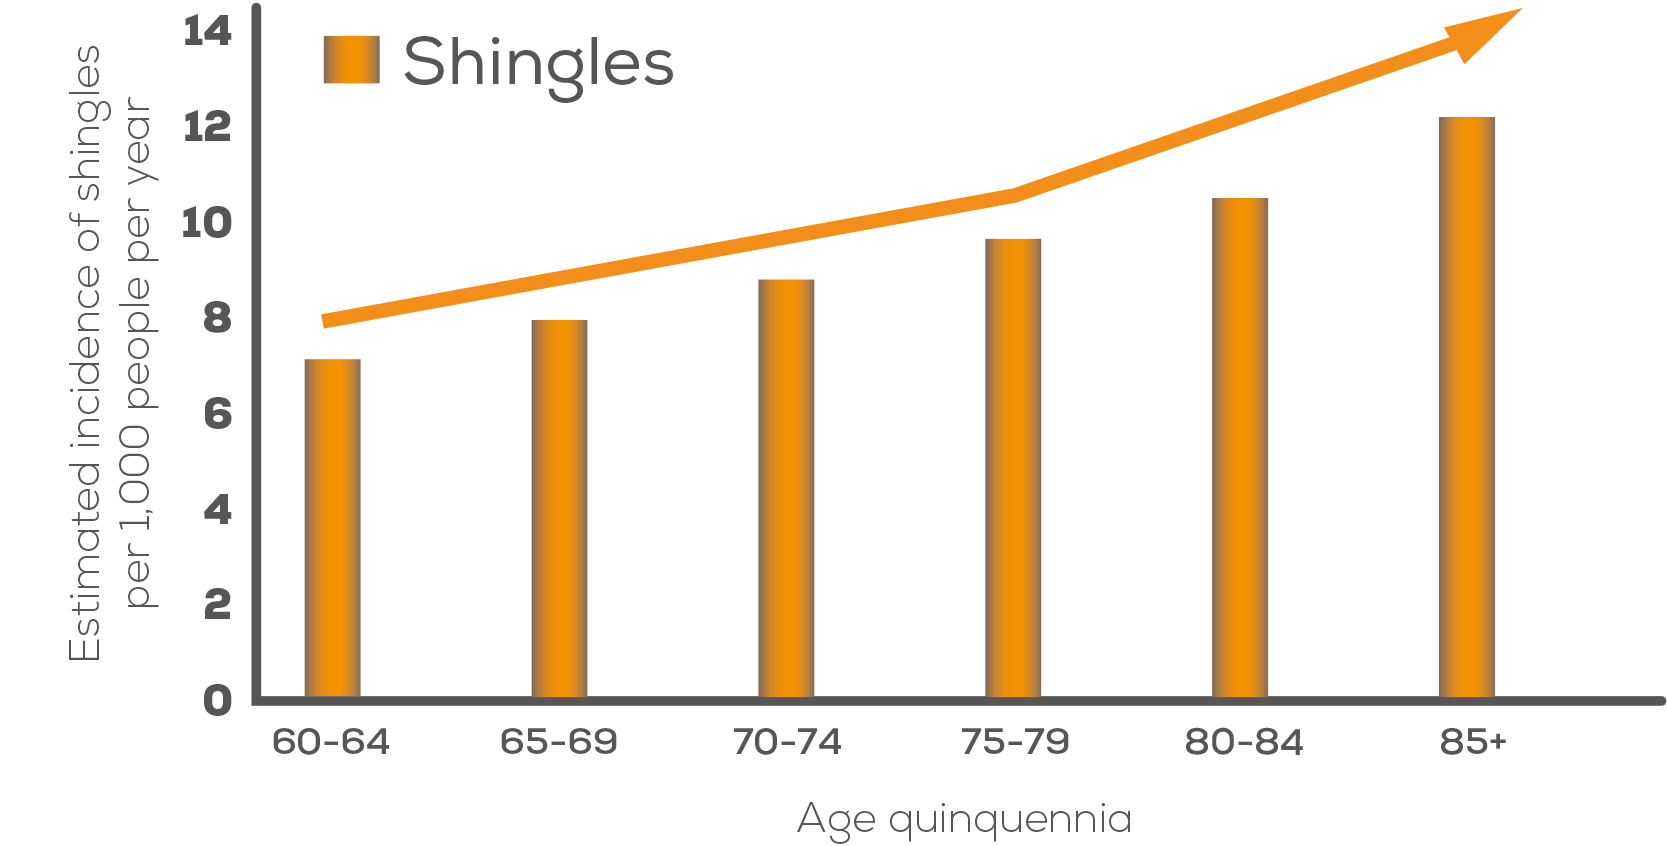 Study has shown that the incidence of shingles does increase with age